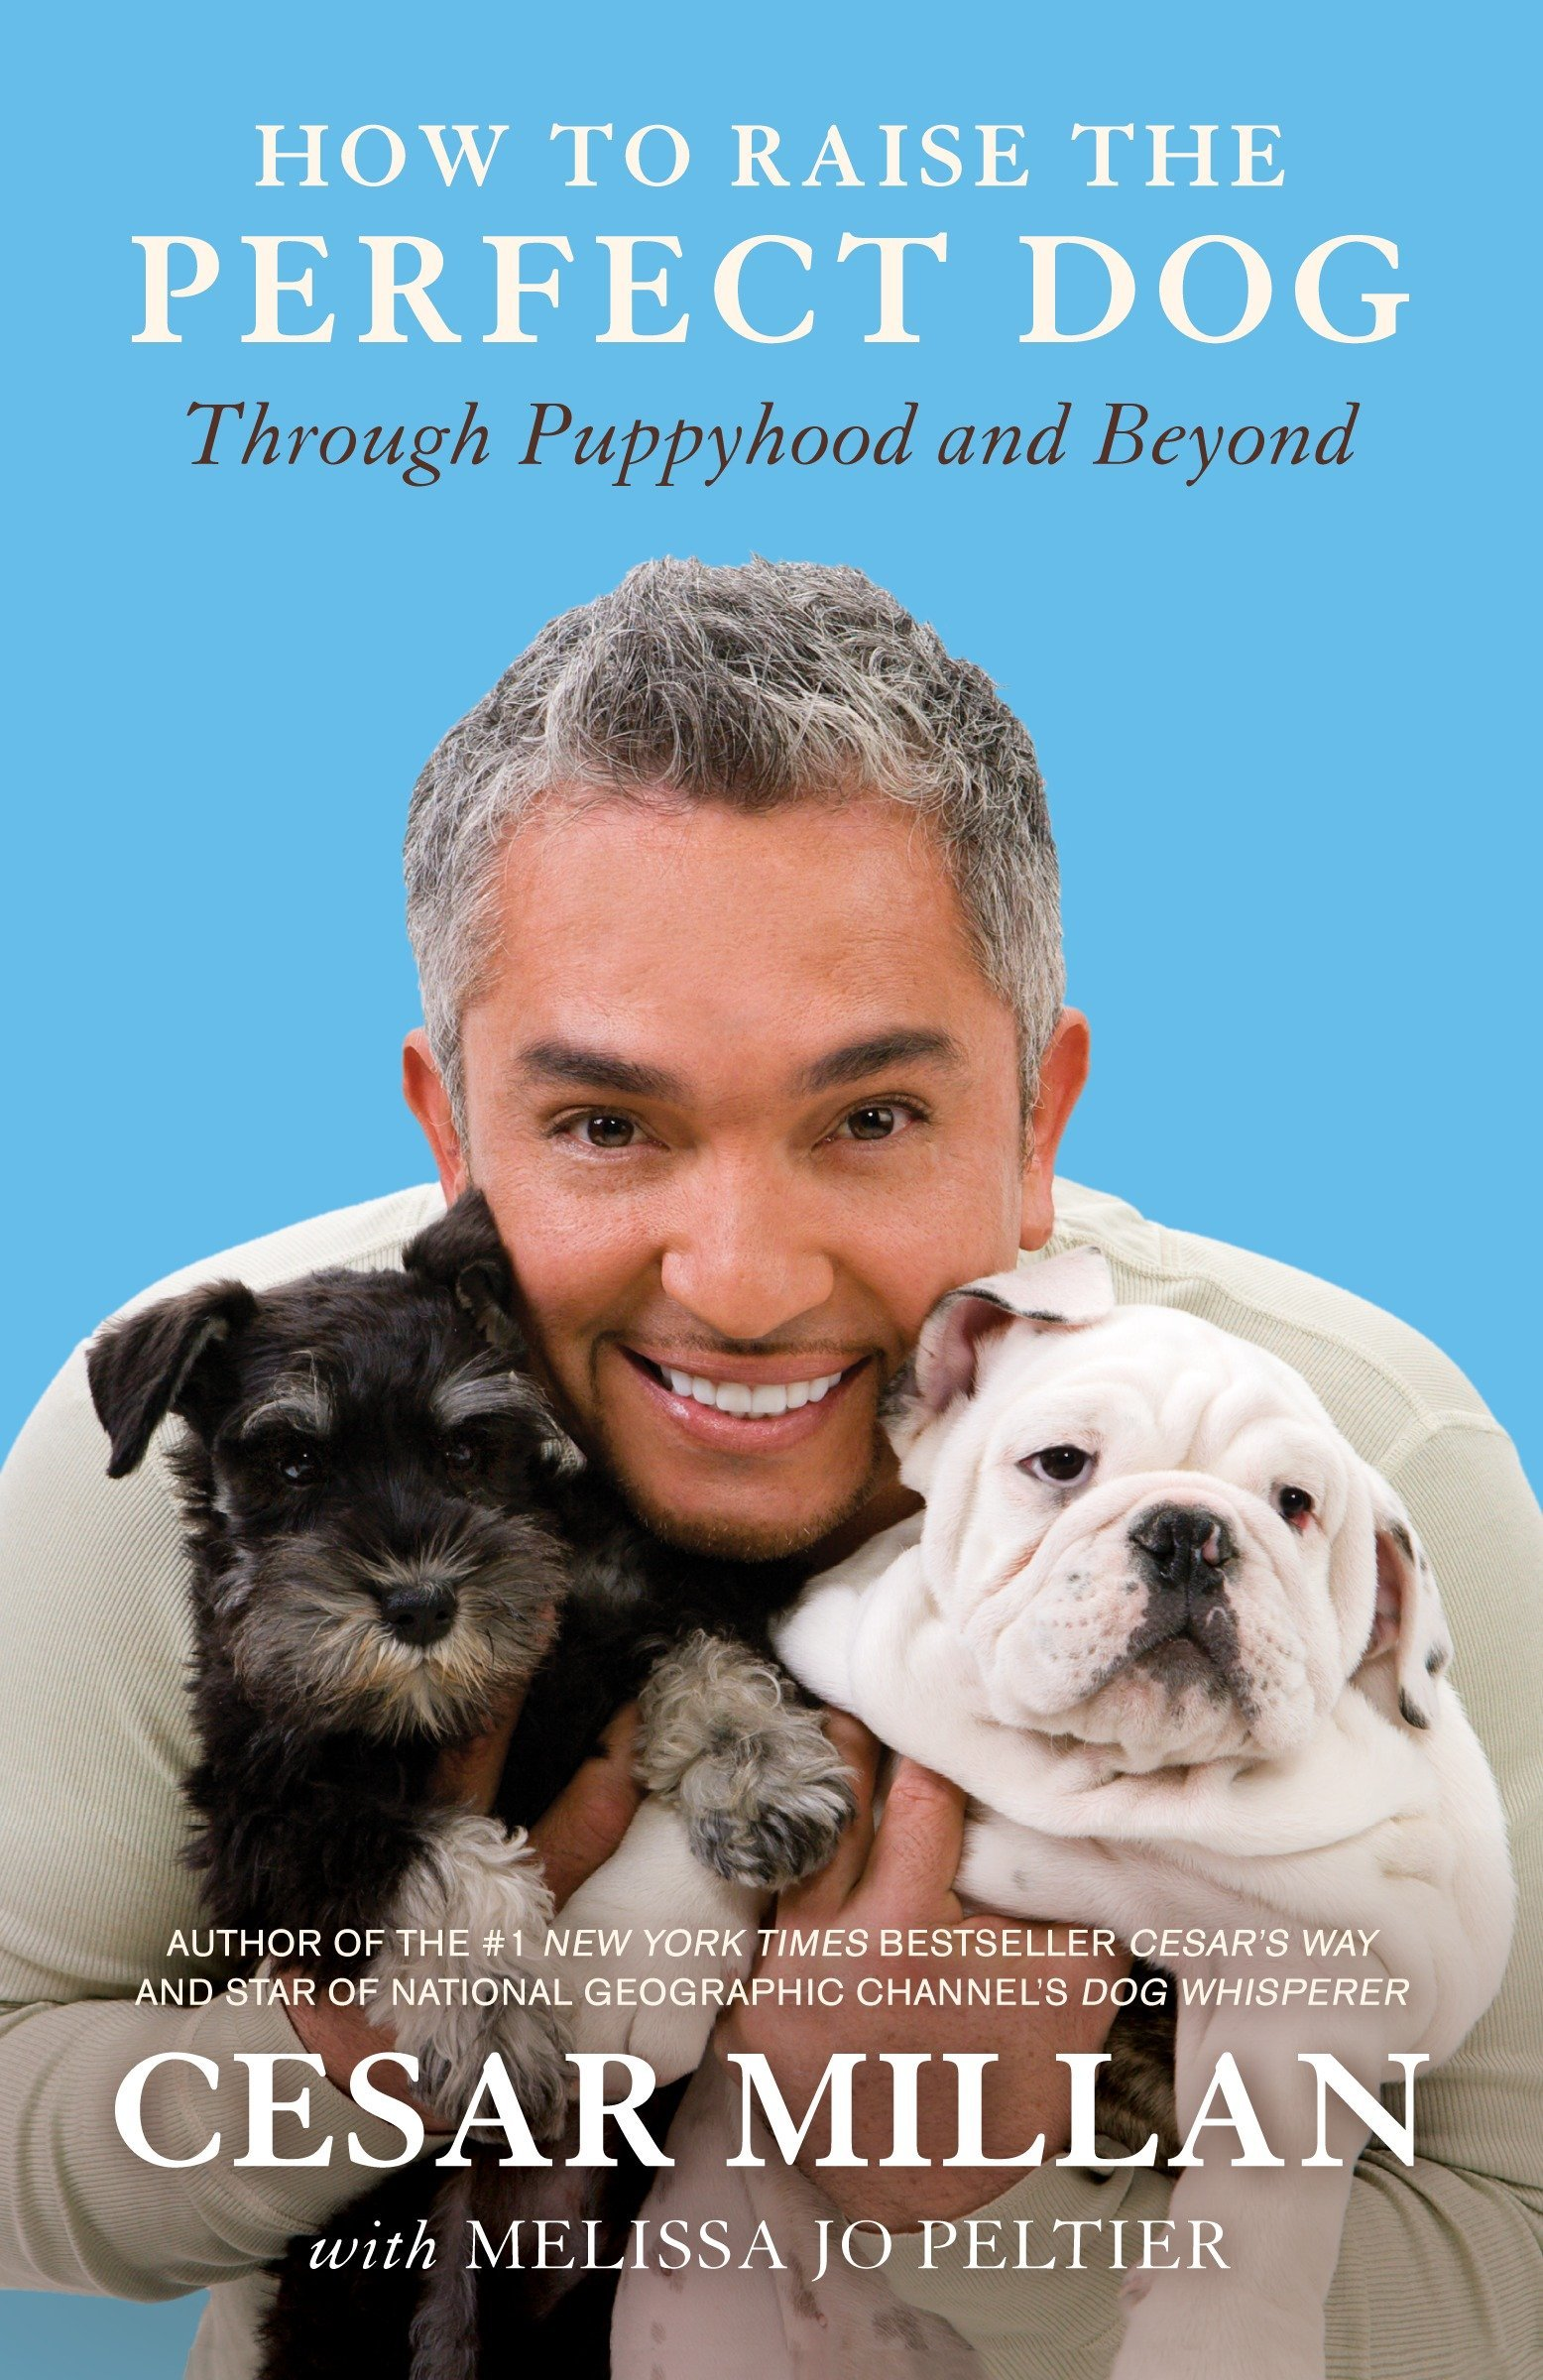 How to Raise the Perfect Dog: Through Puppyhood and Beyond by Three Rivers Press